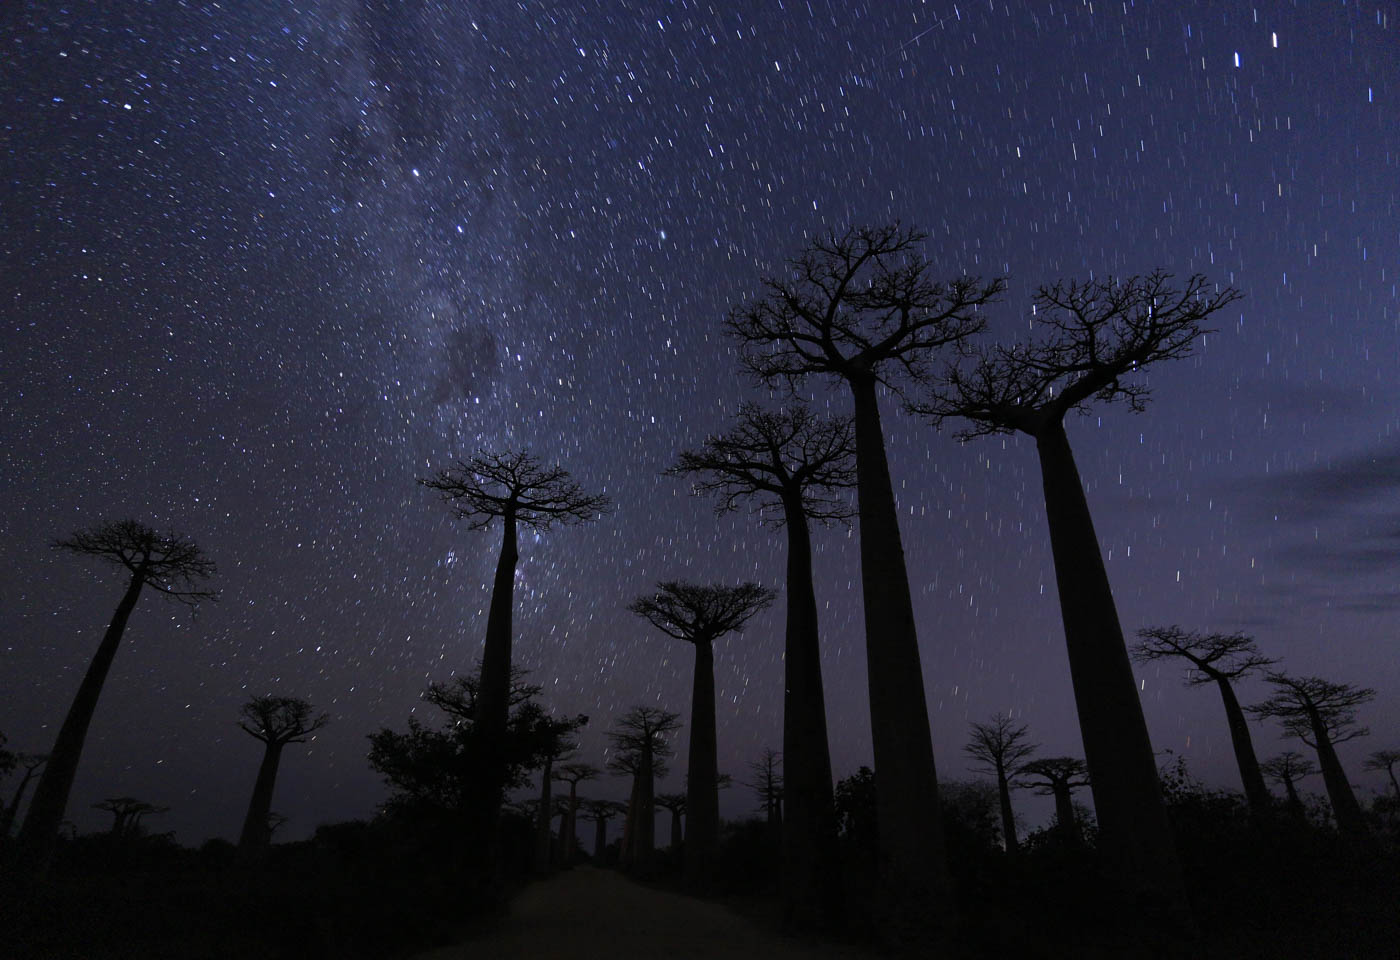 Nightscene with stars in Madagasgar taken with Canon EOS 6D DSLR camera